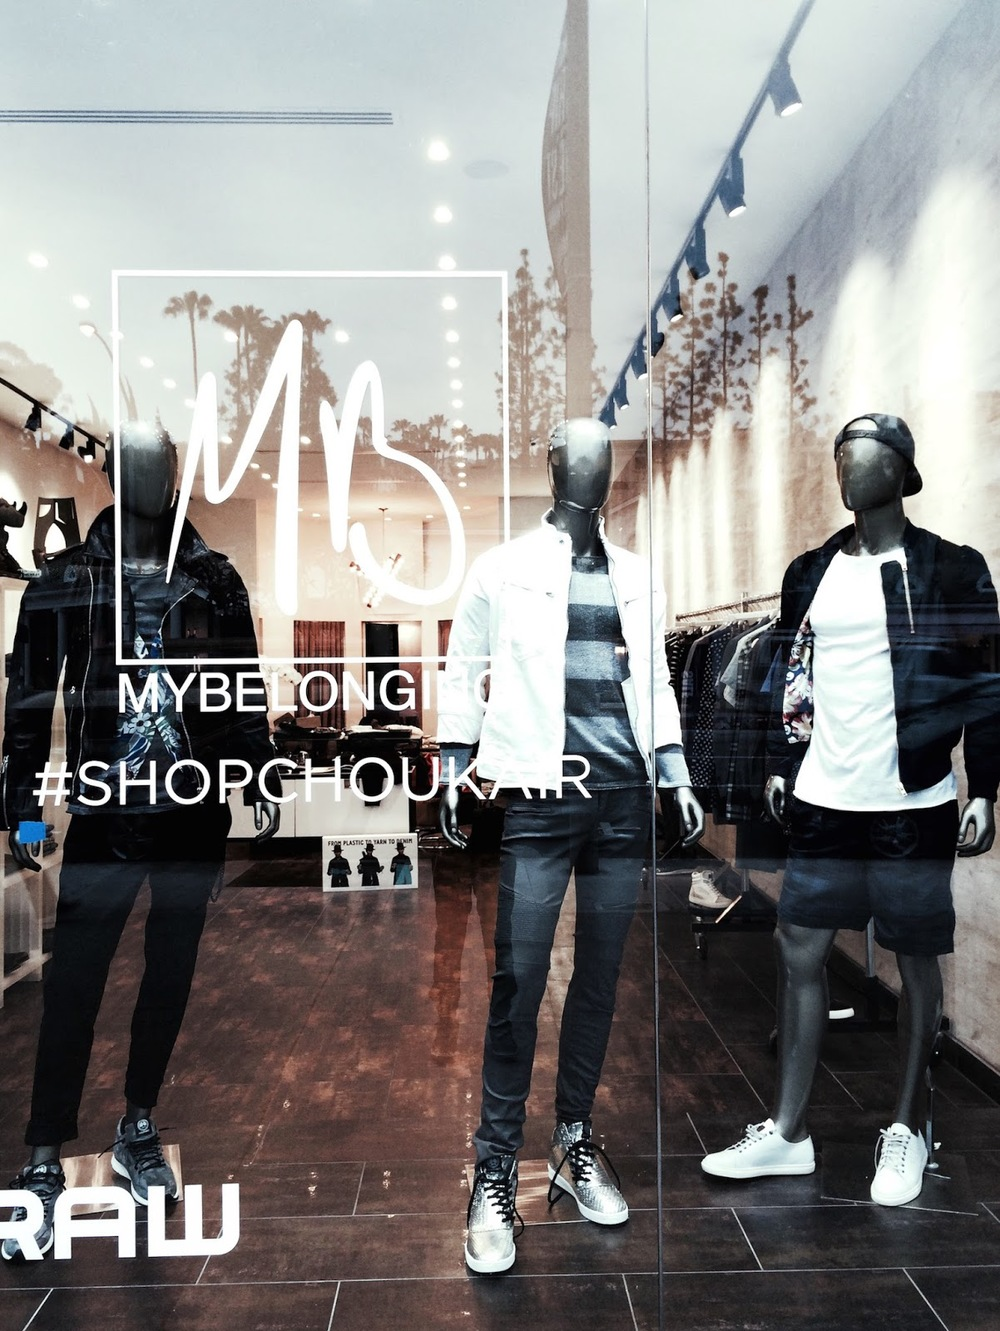 mybelonging-choukair-grandopening-party.JPG